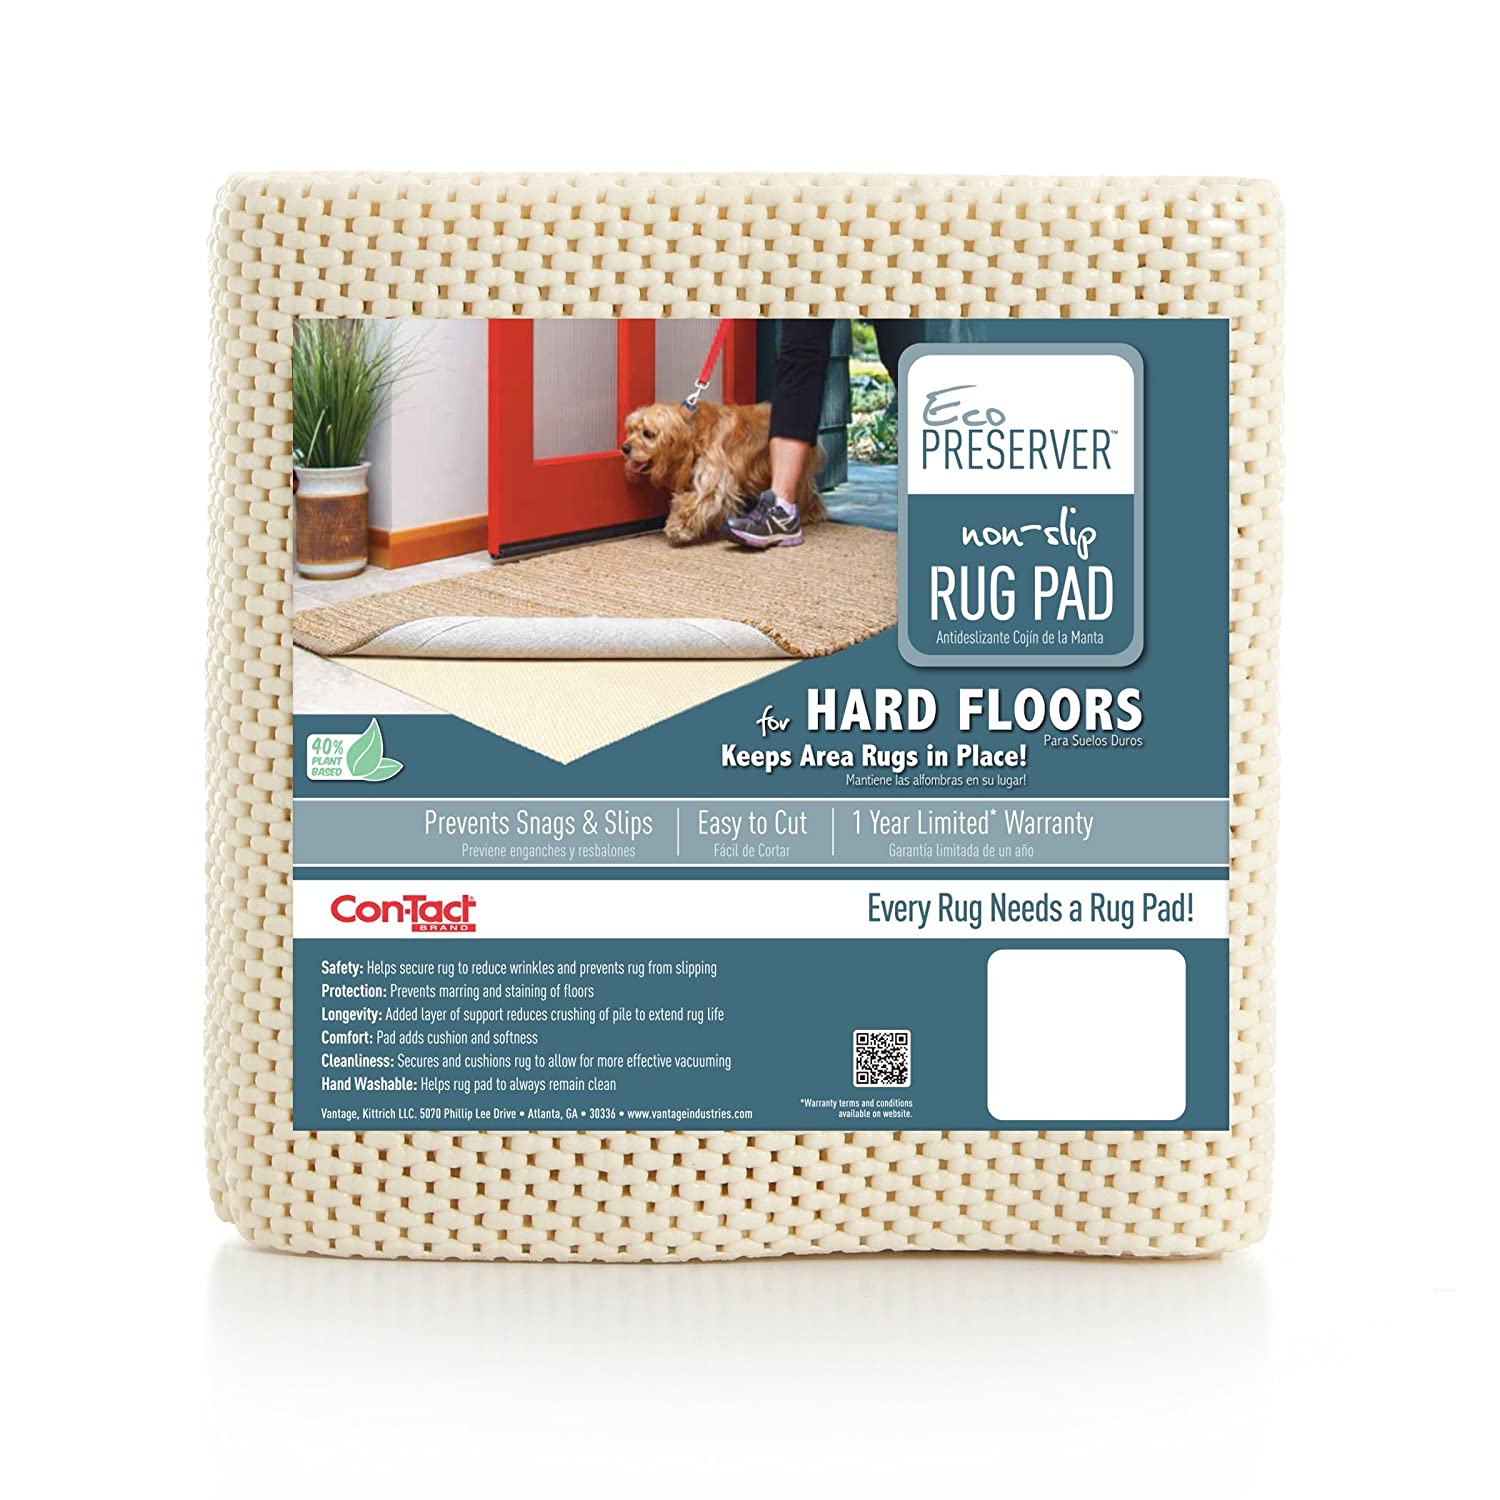 Con-Tact Rug Pad 10x14, Non-Slip Area Rug Pad, Eco-Preserver for Hard Floors